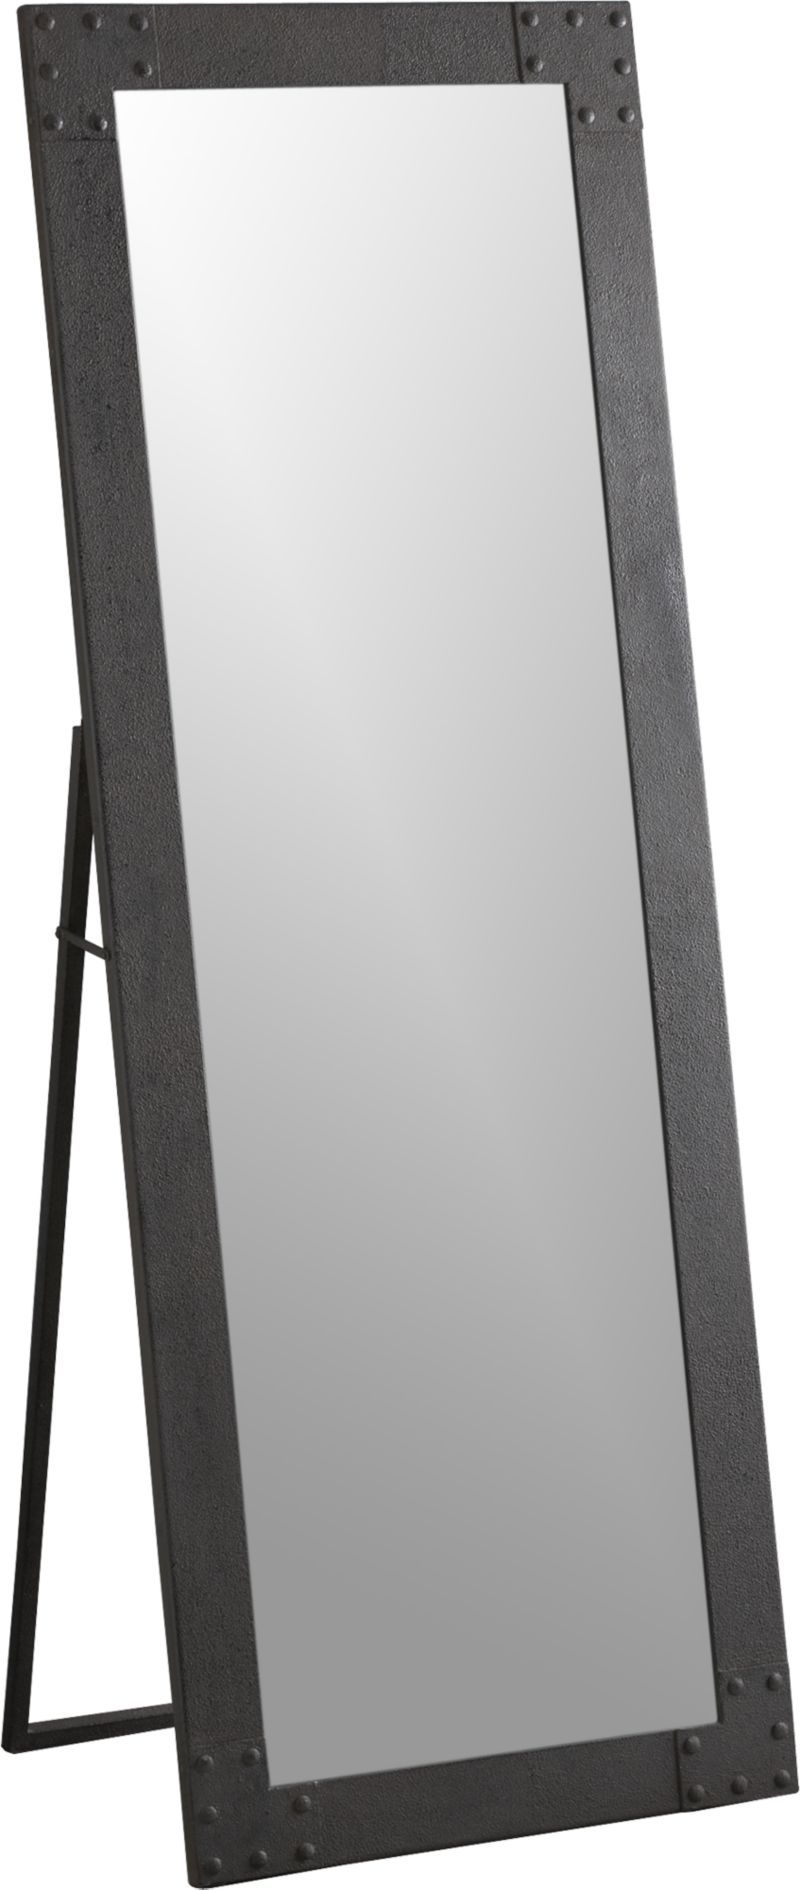 Full Length Mirror Comes Off The Wall And Into The Room In